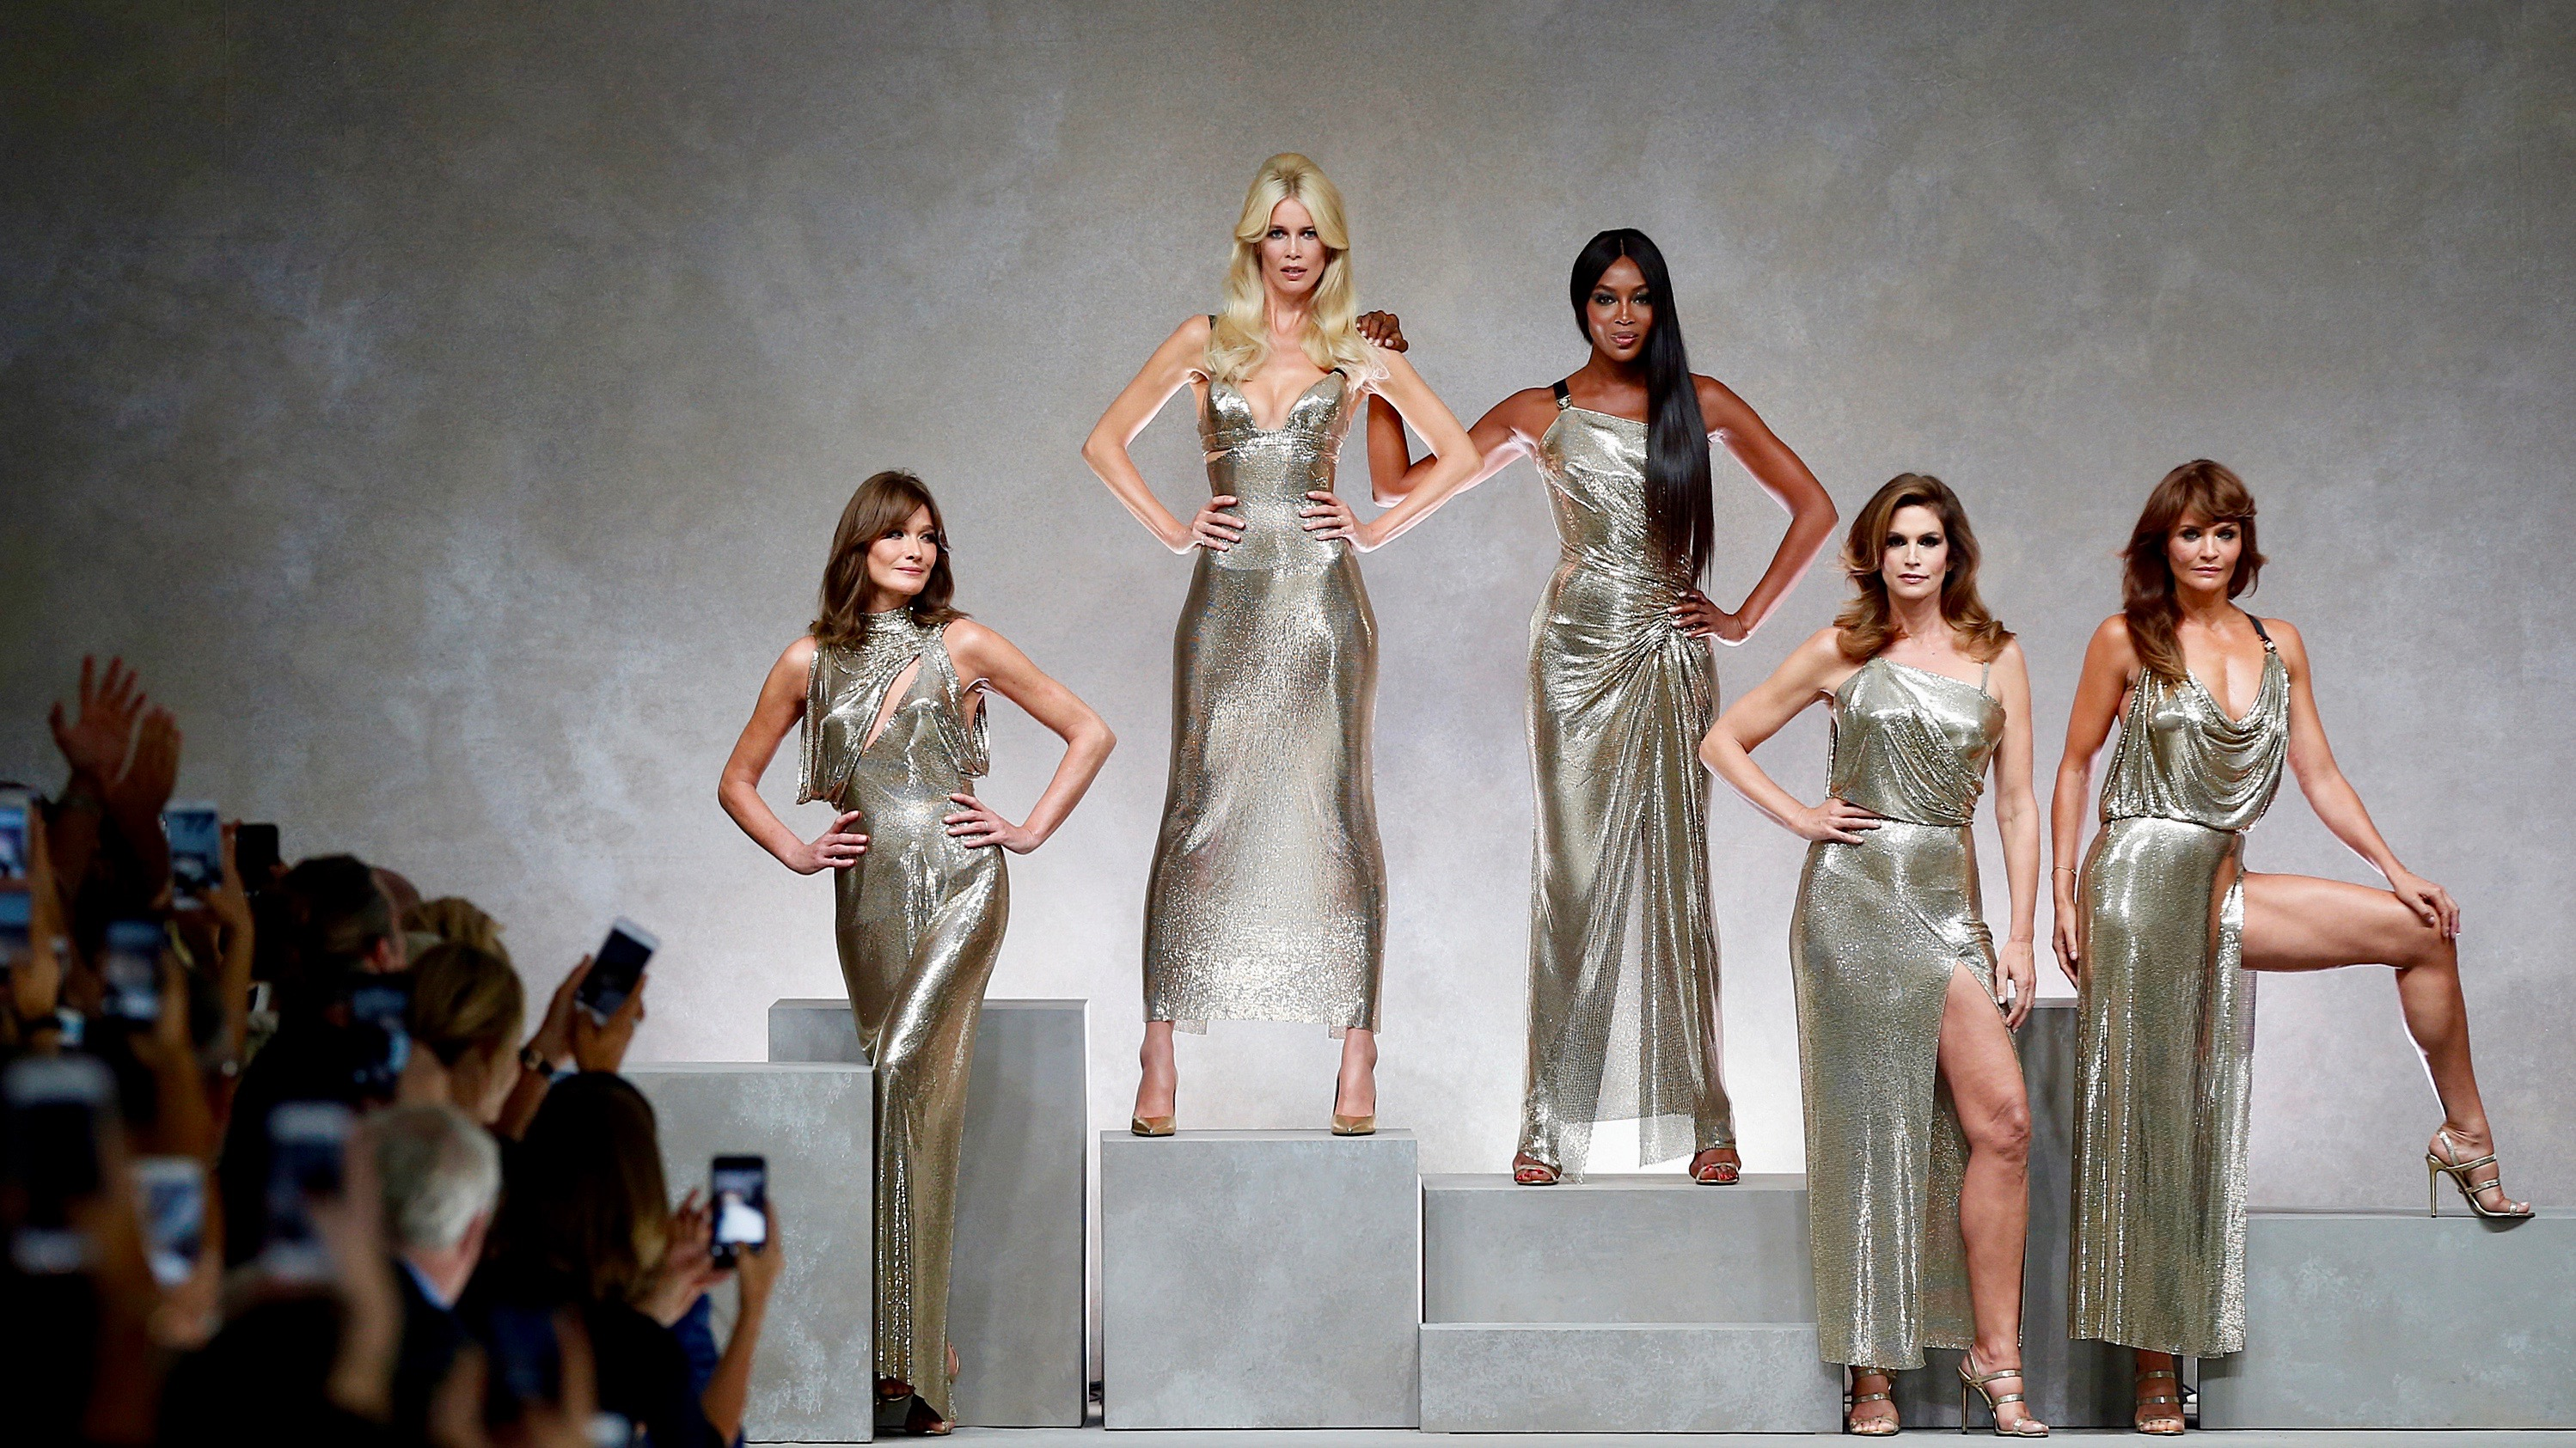 Carla Bruni (L), Claudia Schiffer, Naomi Campbell, Cindy Crawford and Helena Christensen in Versace.